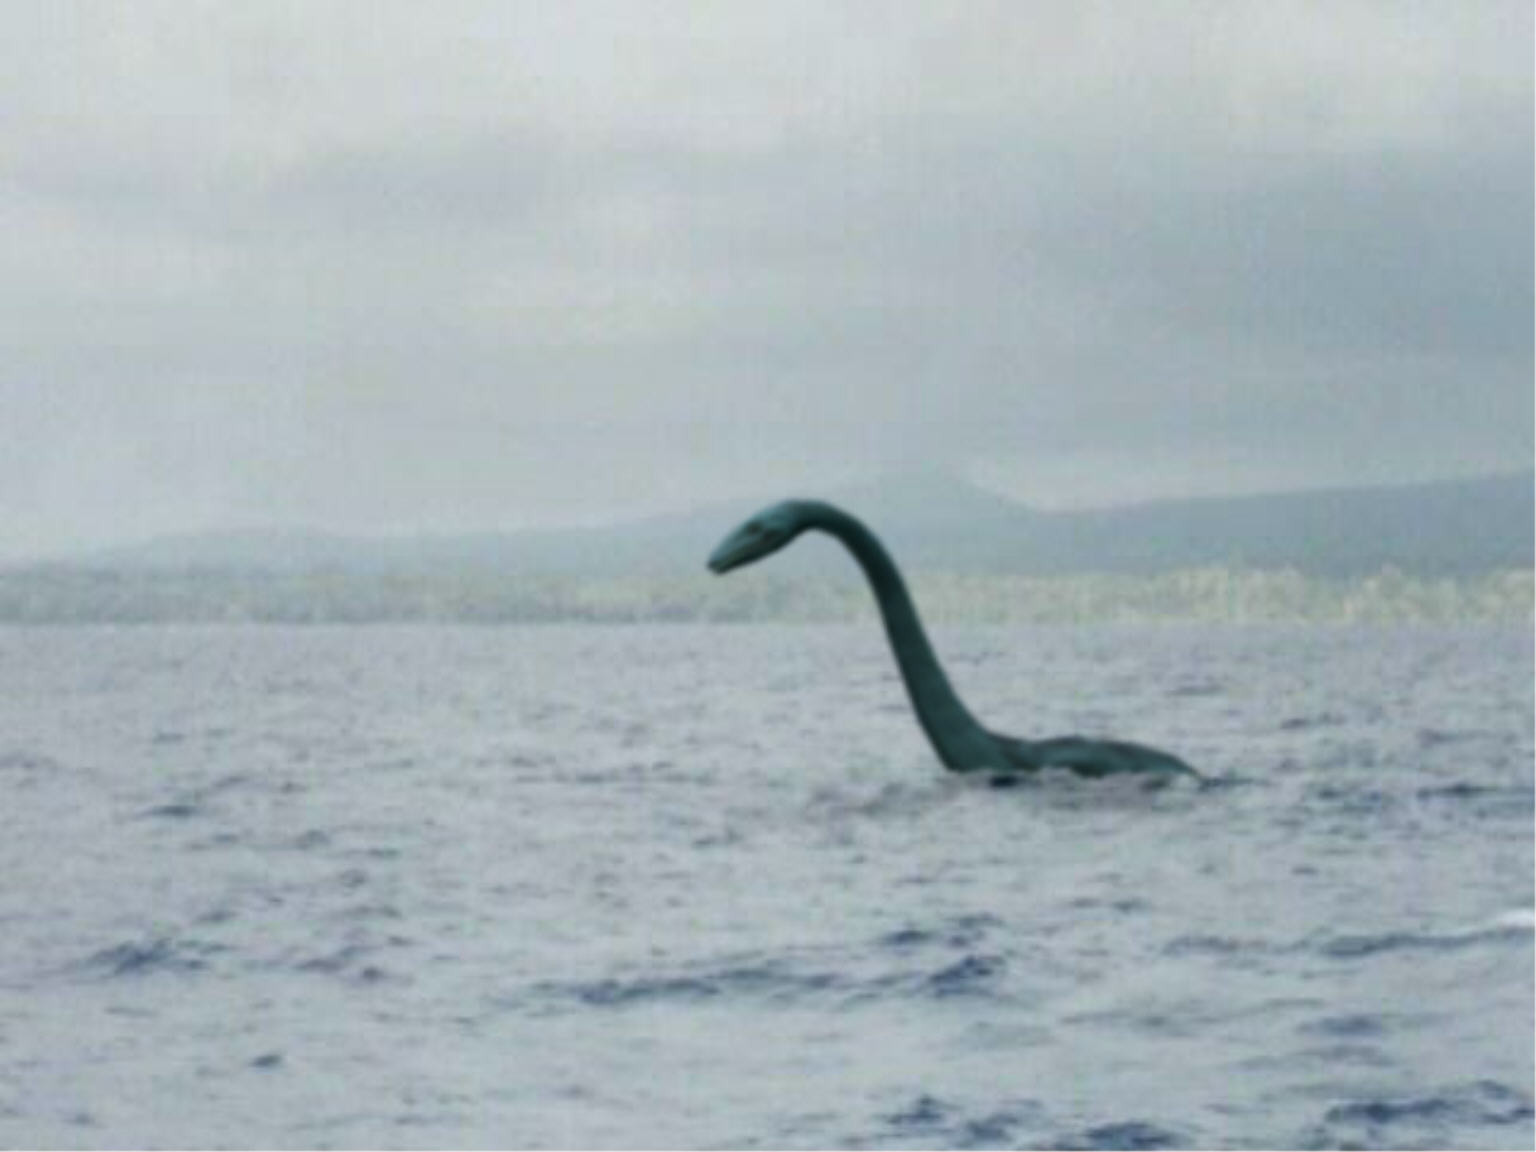 Loch Ness Monster Sightings 2014 Sea monster sightings 2014